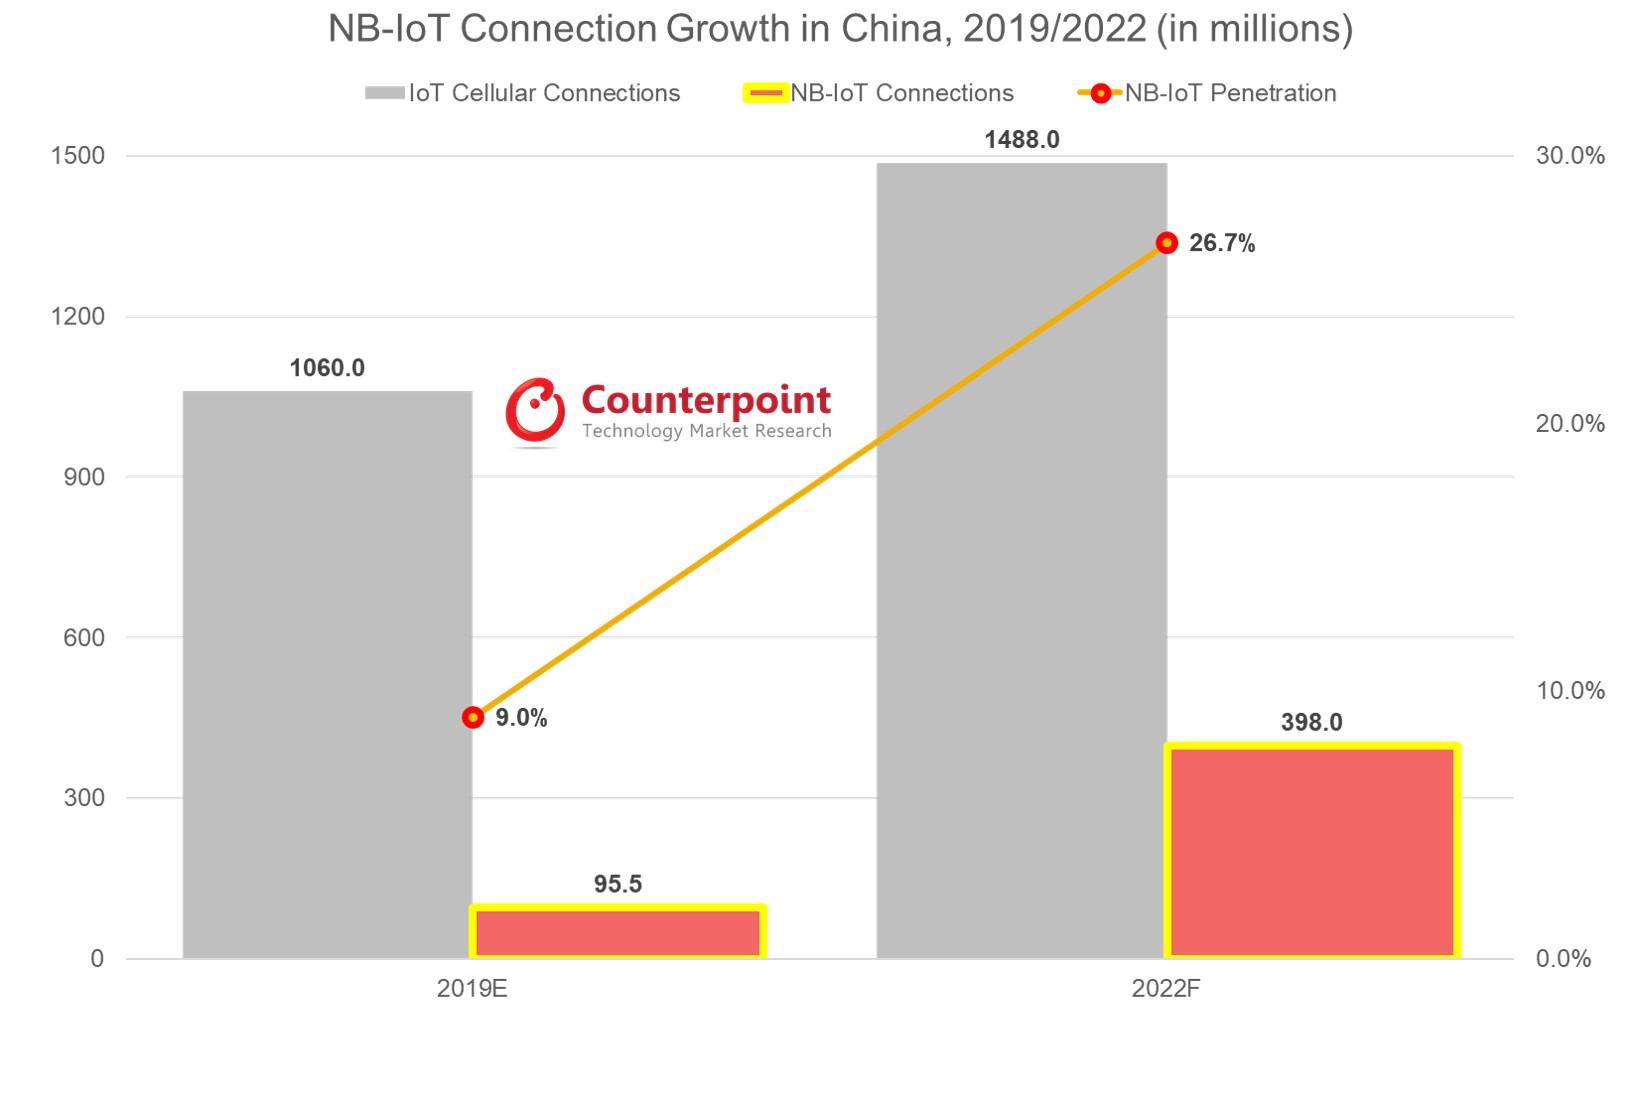 Counterpoint NB-IoT is Poised to Take Off